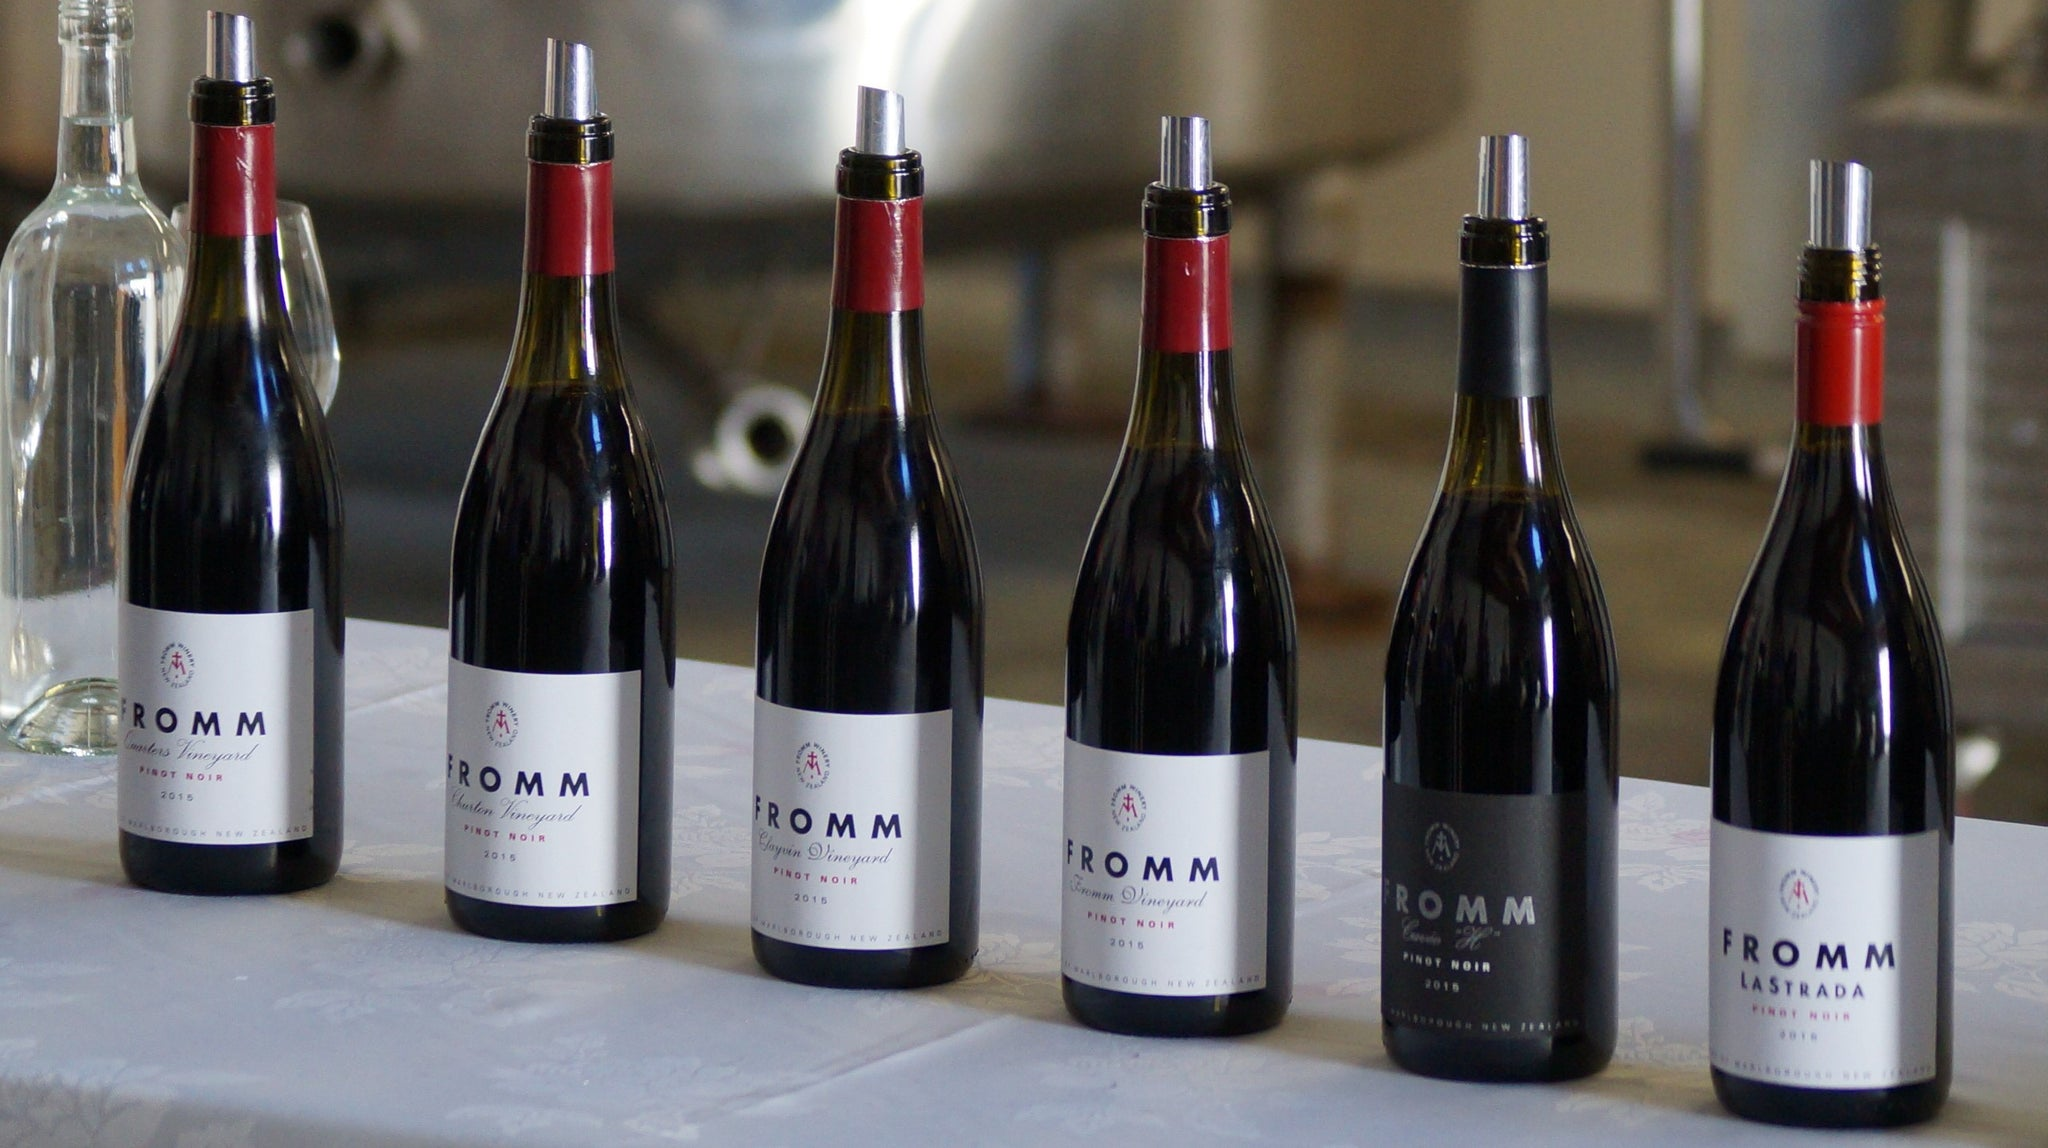 FROMM Pinot Noir: The best in the region?